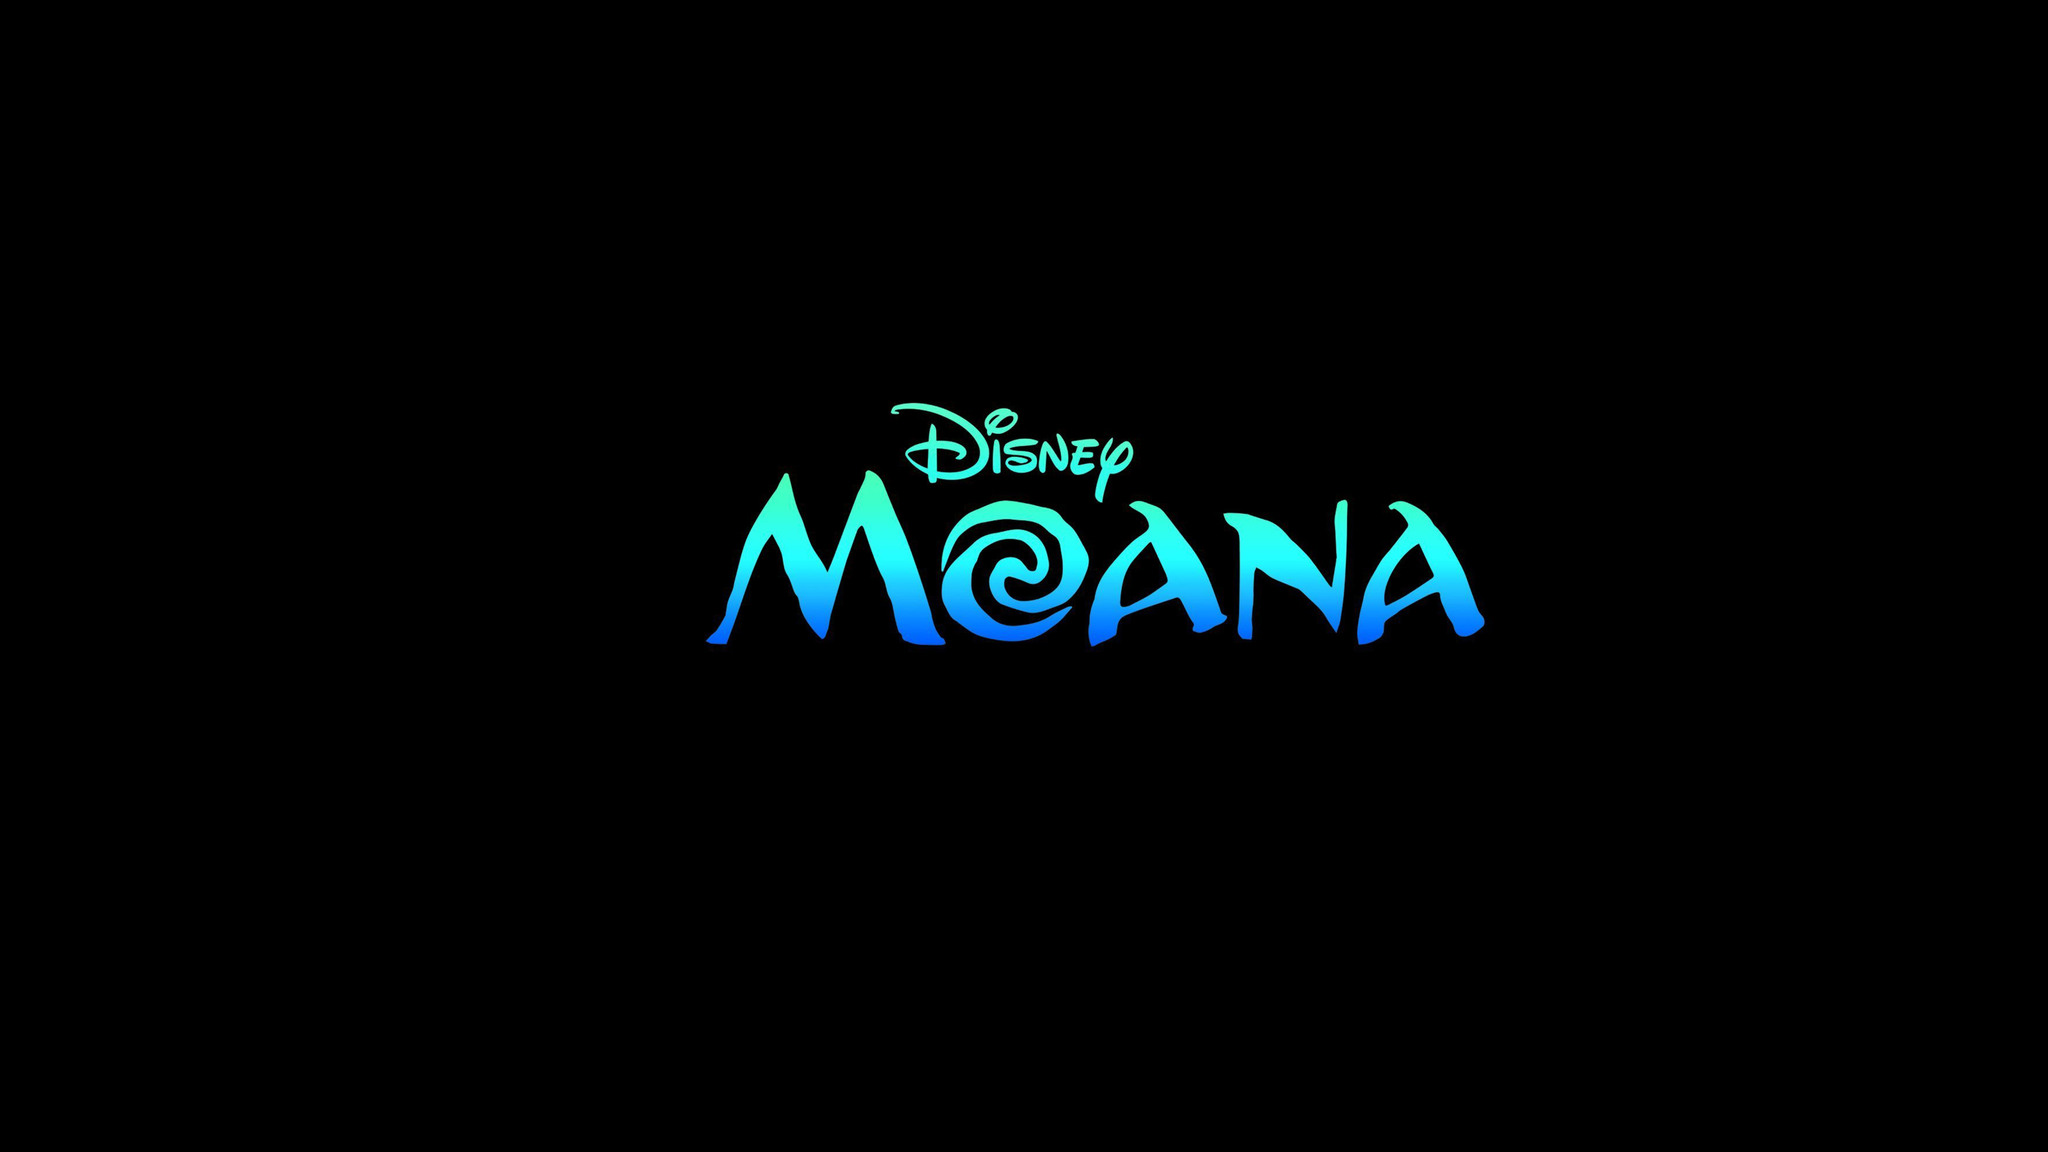 2048x1152 Moana Movie Logo 2048x1152 Resolution Hd 4k